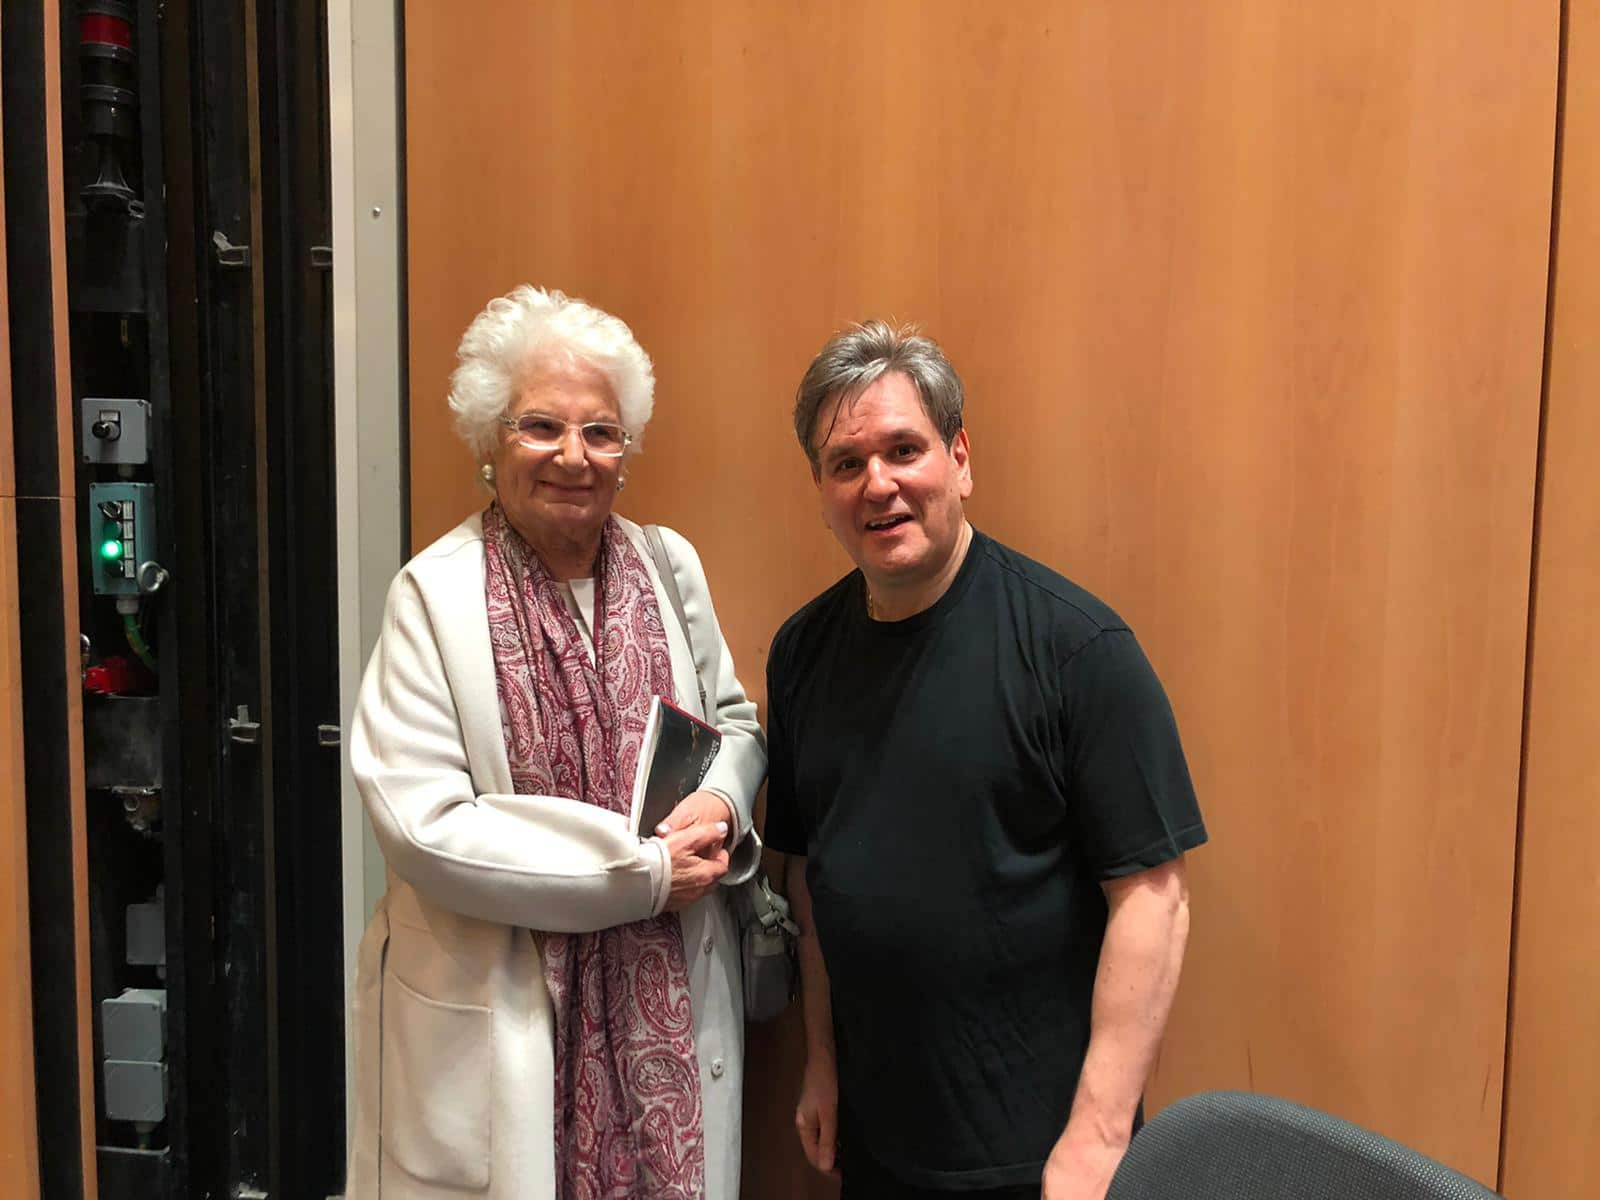 Breaking: Pappano quits Rome